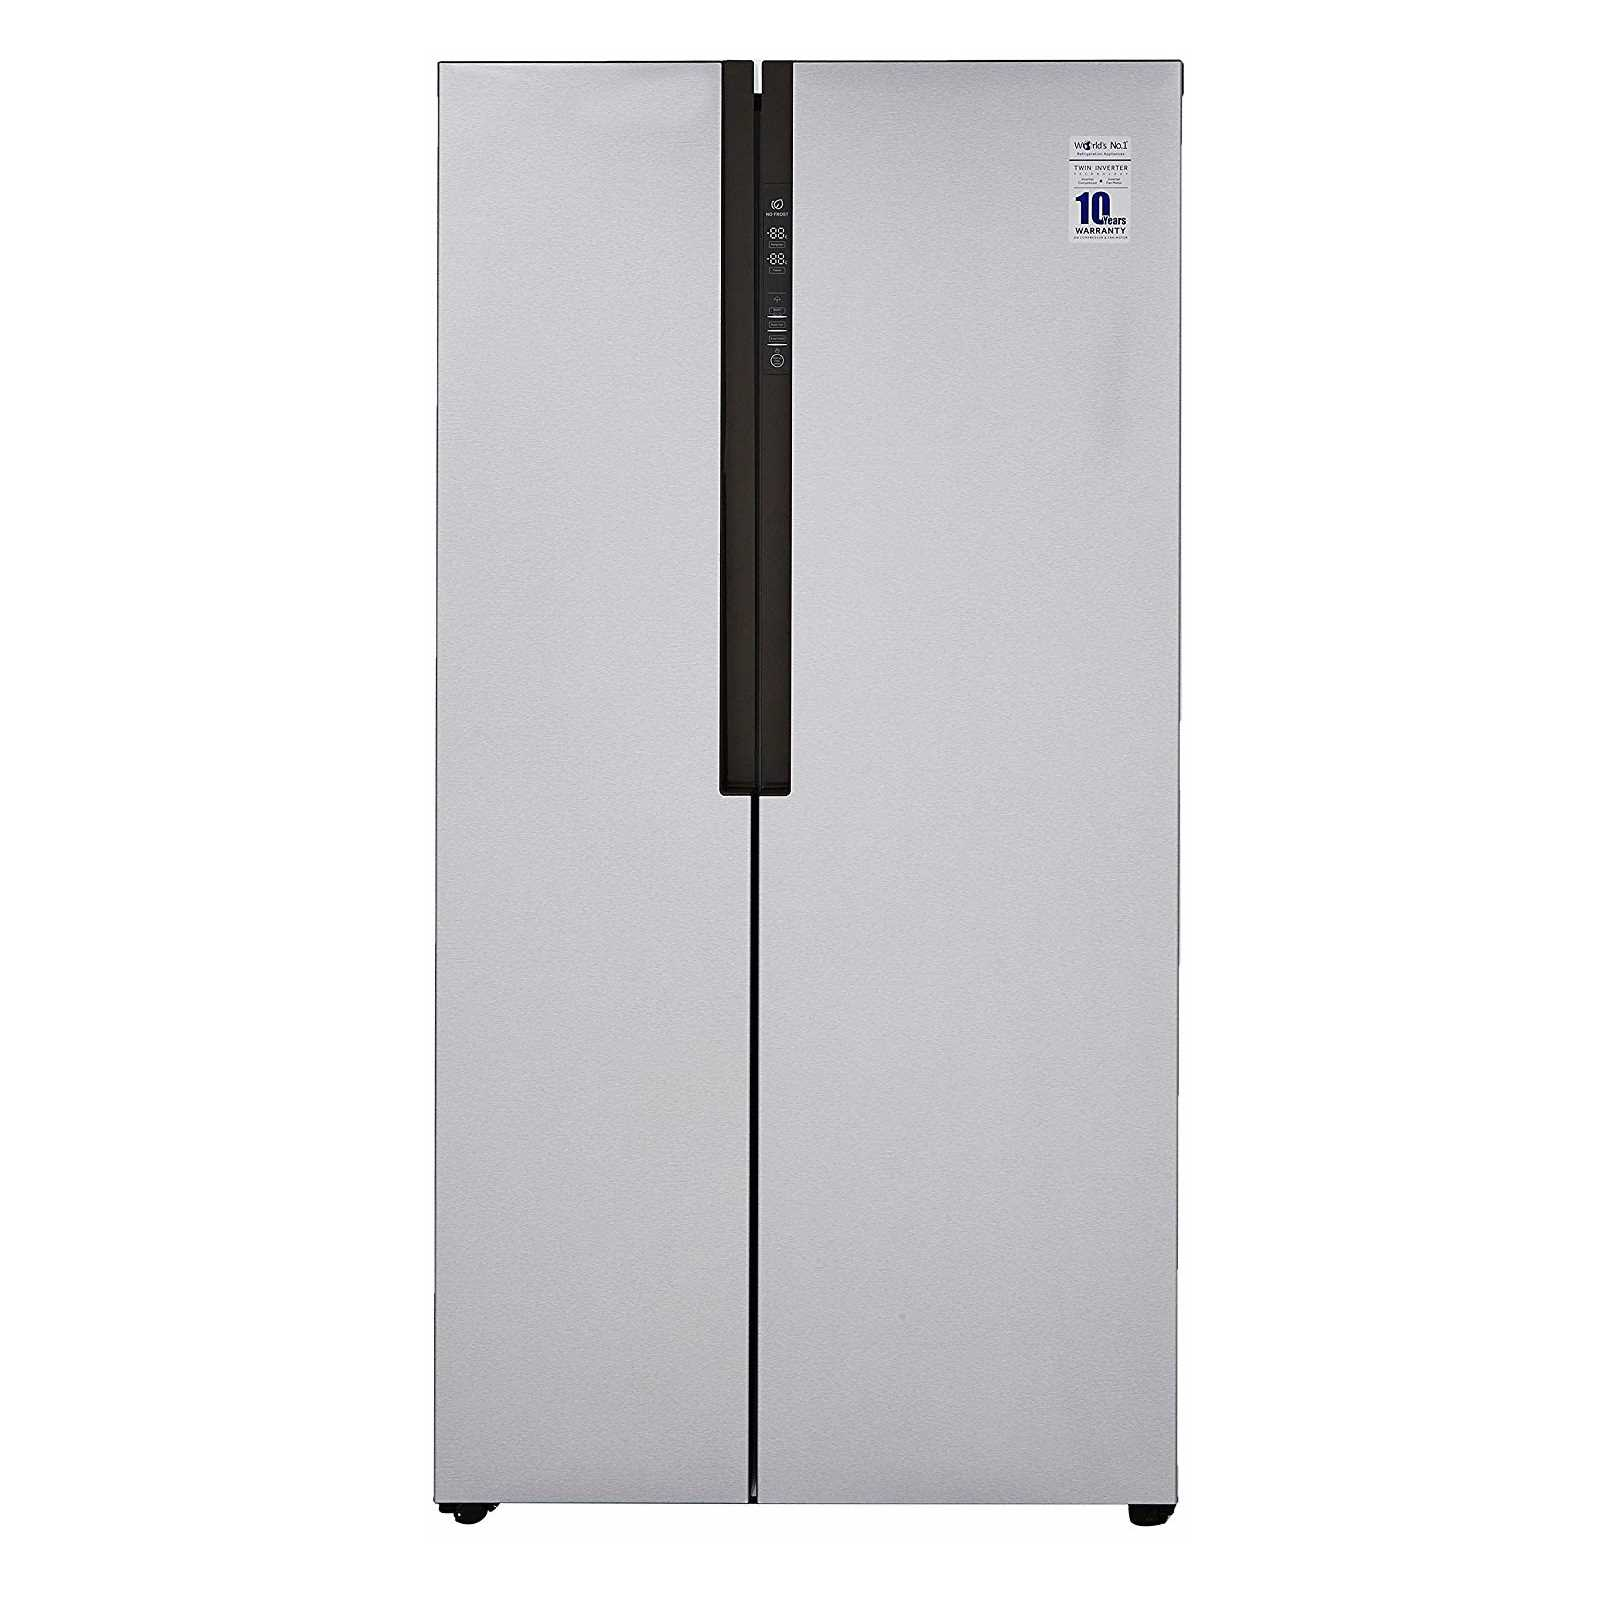 Haier HRF 619SS 565 Litre Frost Free Side by Side Refrigerator